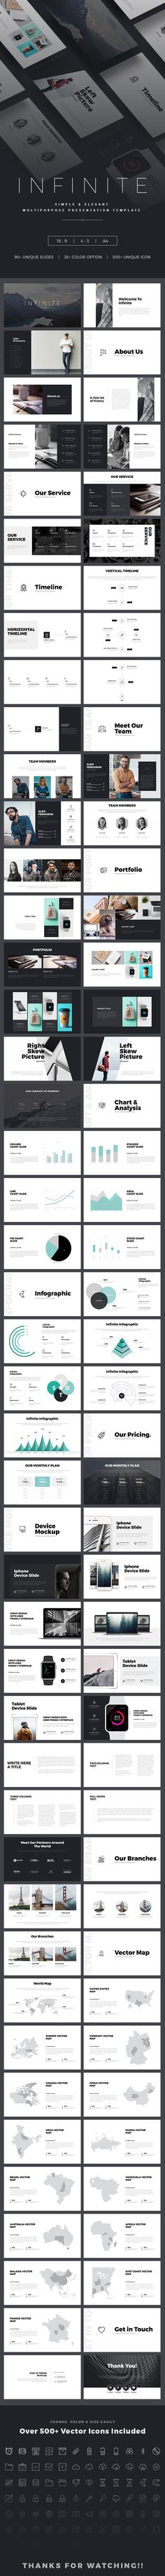 Infinite Powerpoint - PowerPoint Presentation Templates